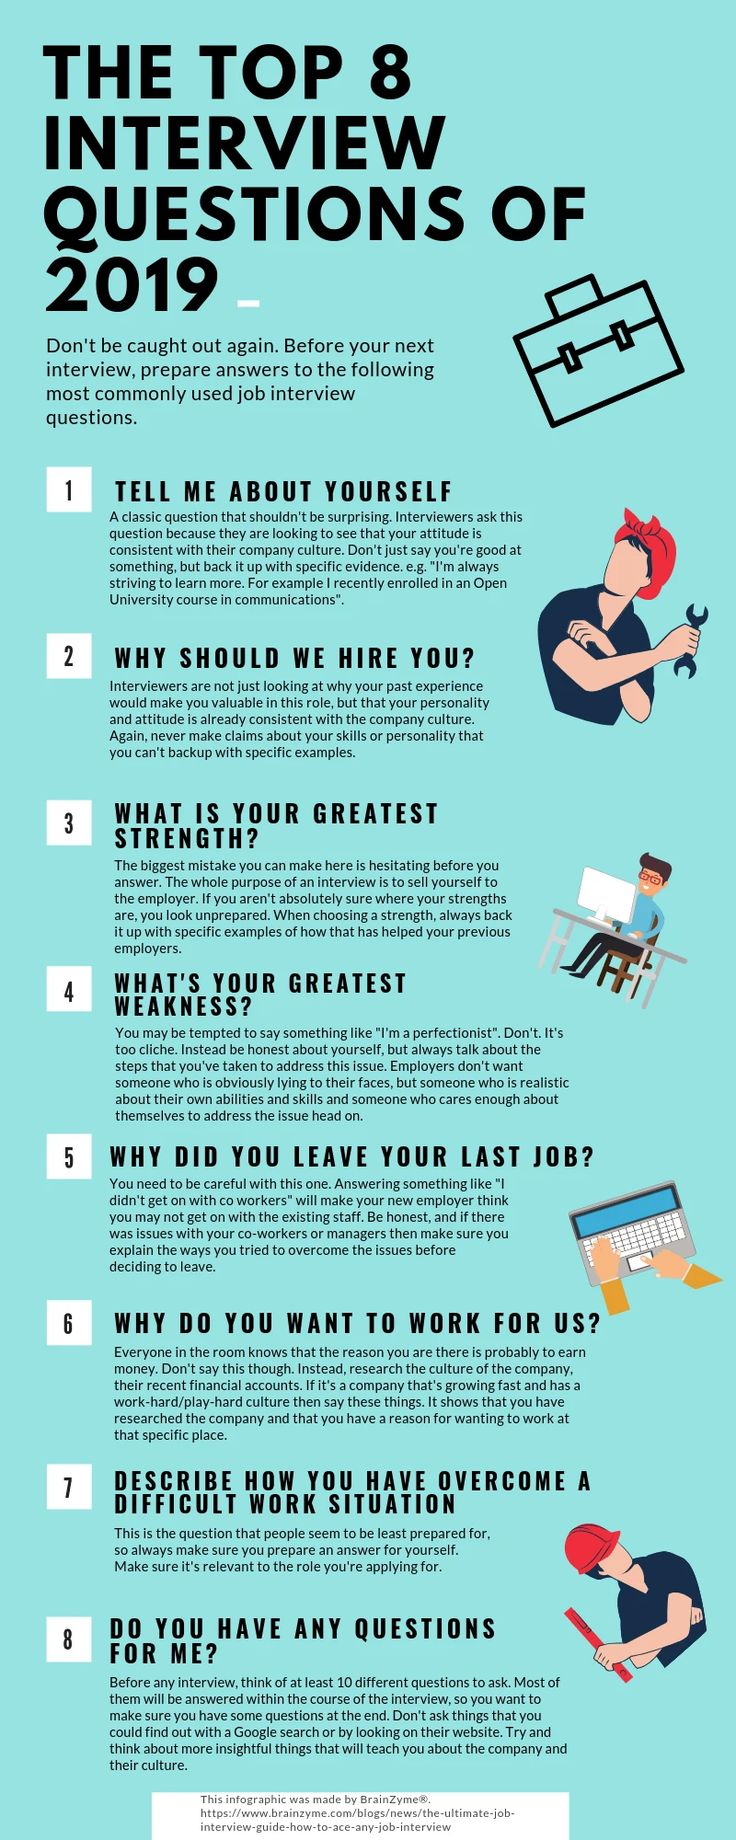 Job Interview Tips A StepByStep Guide for Acing Job